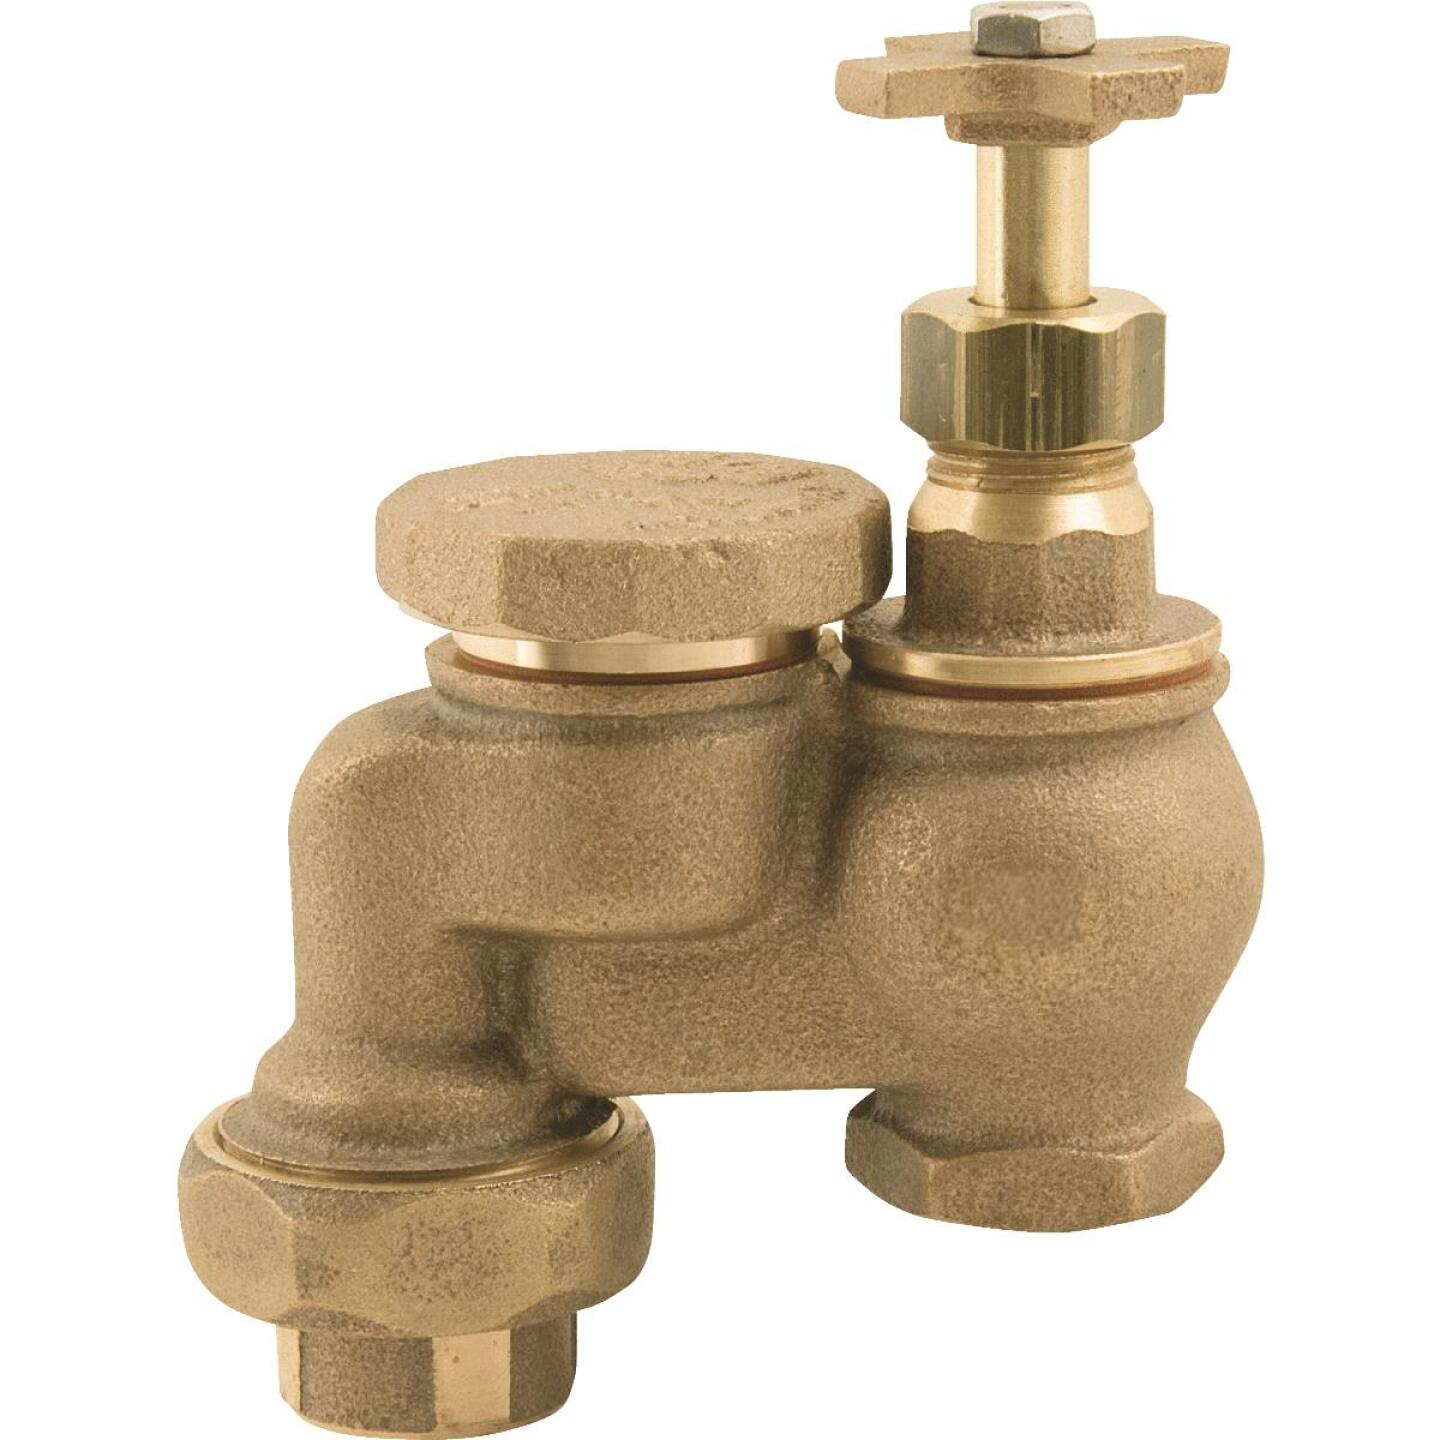 Champion 1 In. 25 to 150 psi Anti-Siphon Valve with Union Image 1